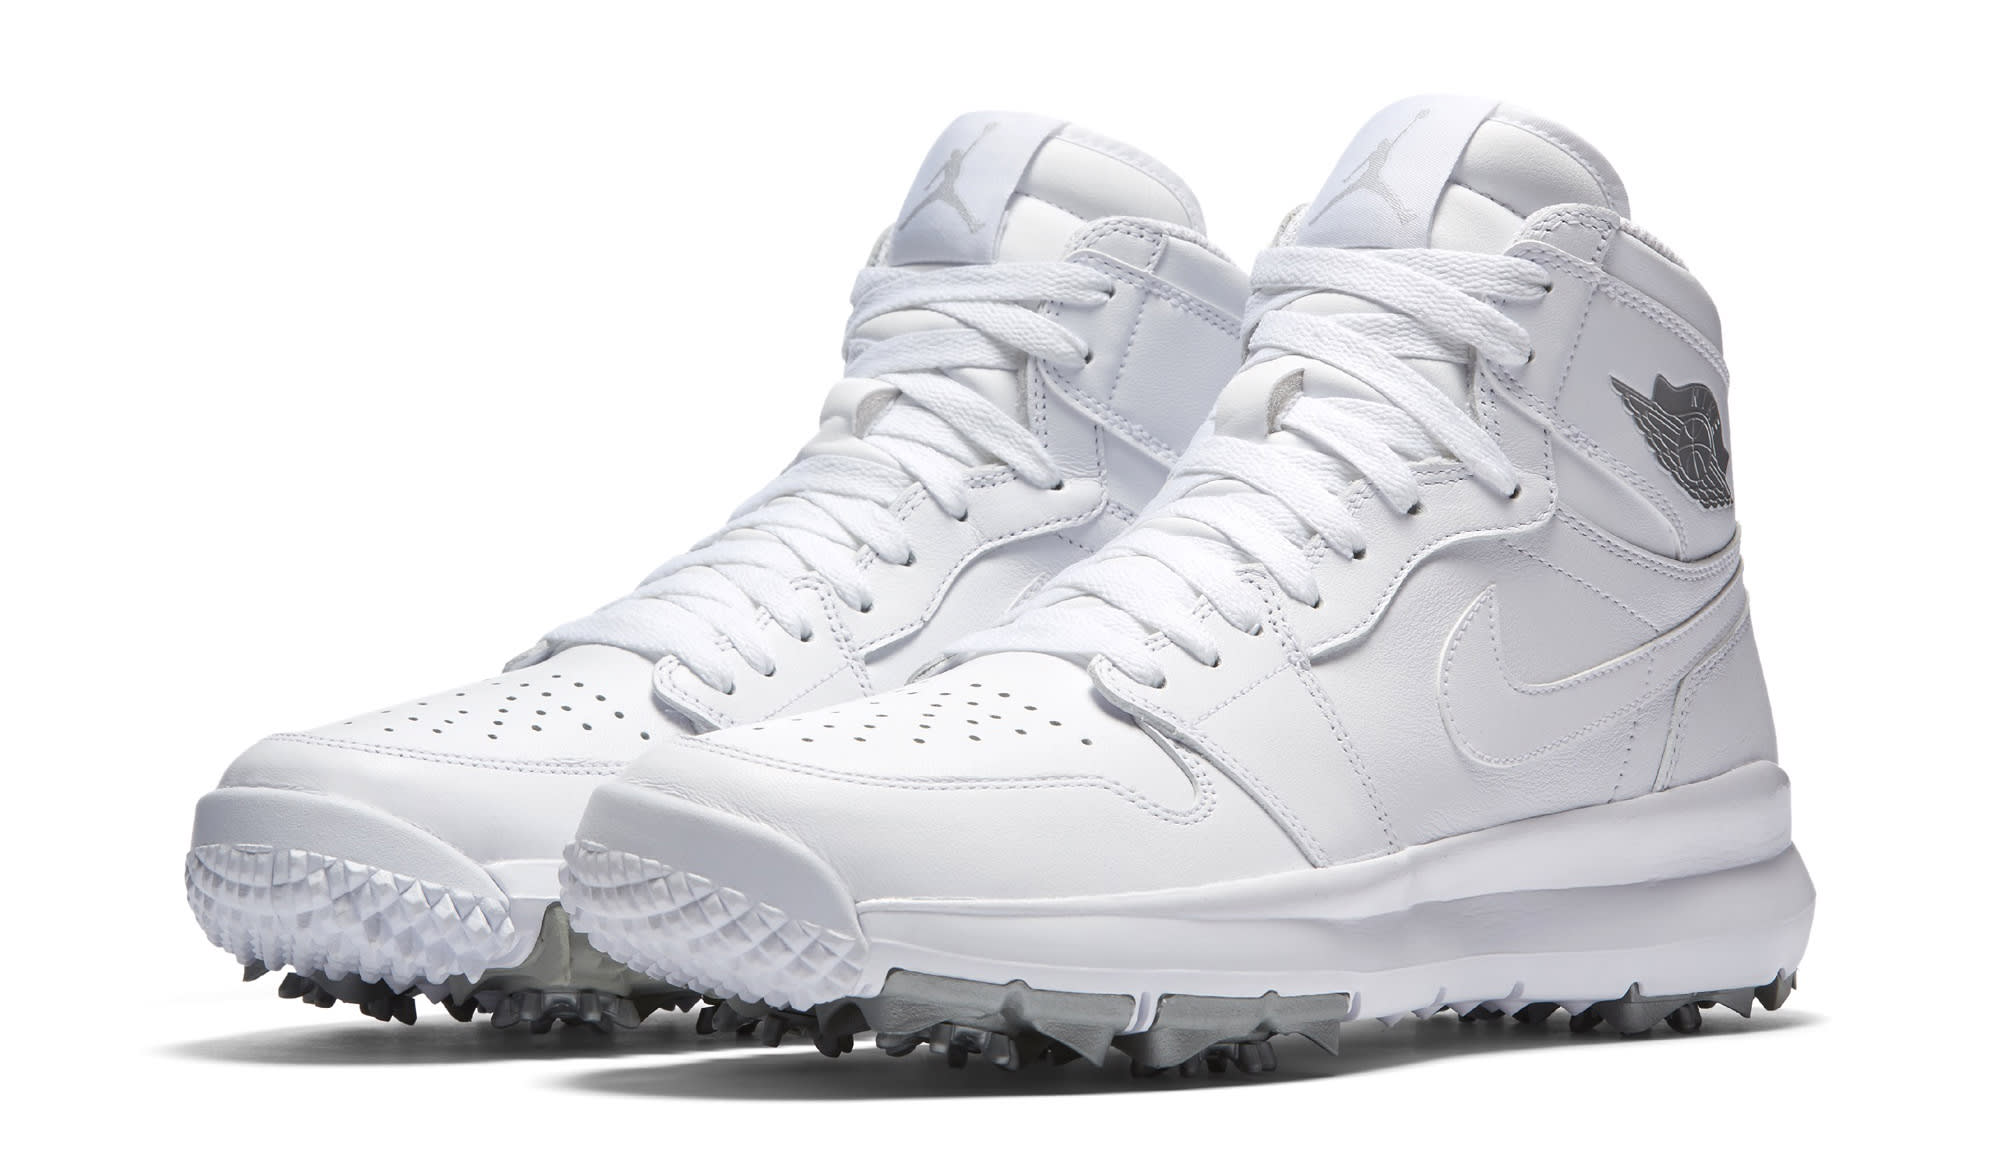 2bfa7db0c Image via Nike White Air Jordan 1 Golf